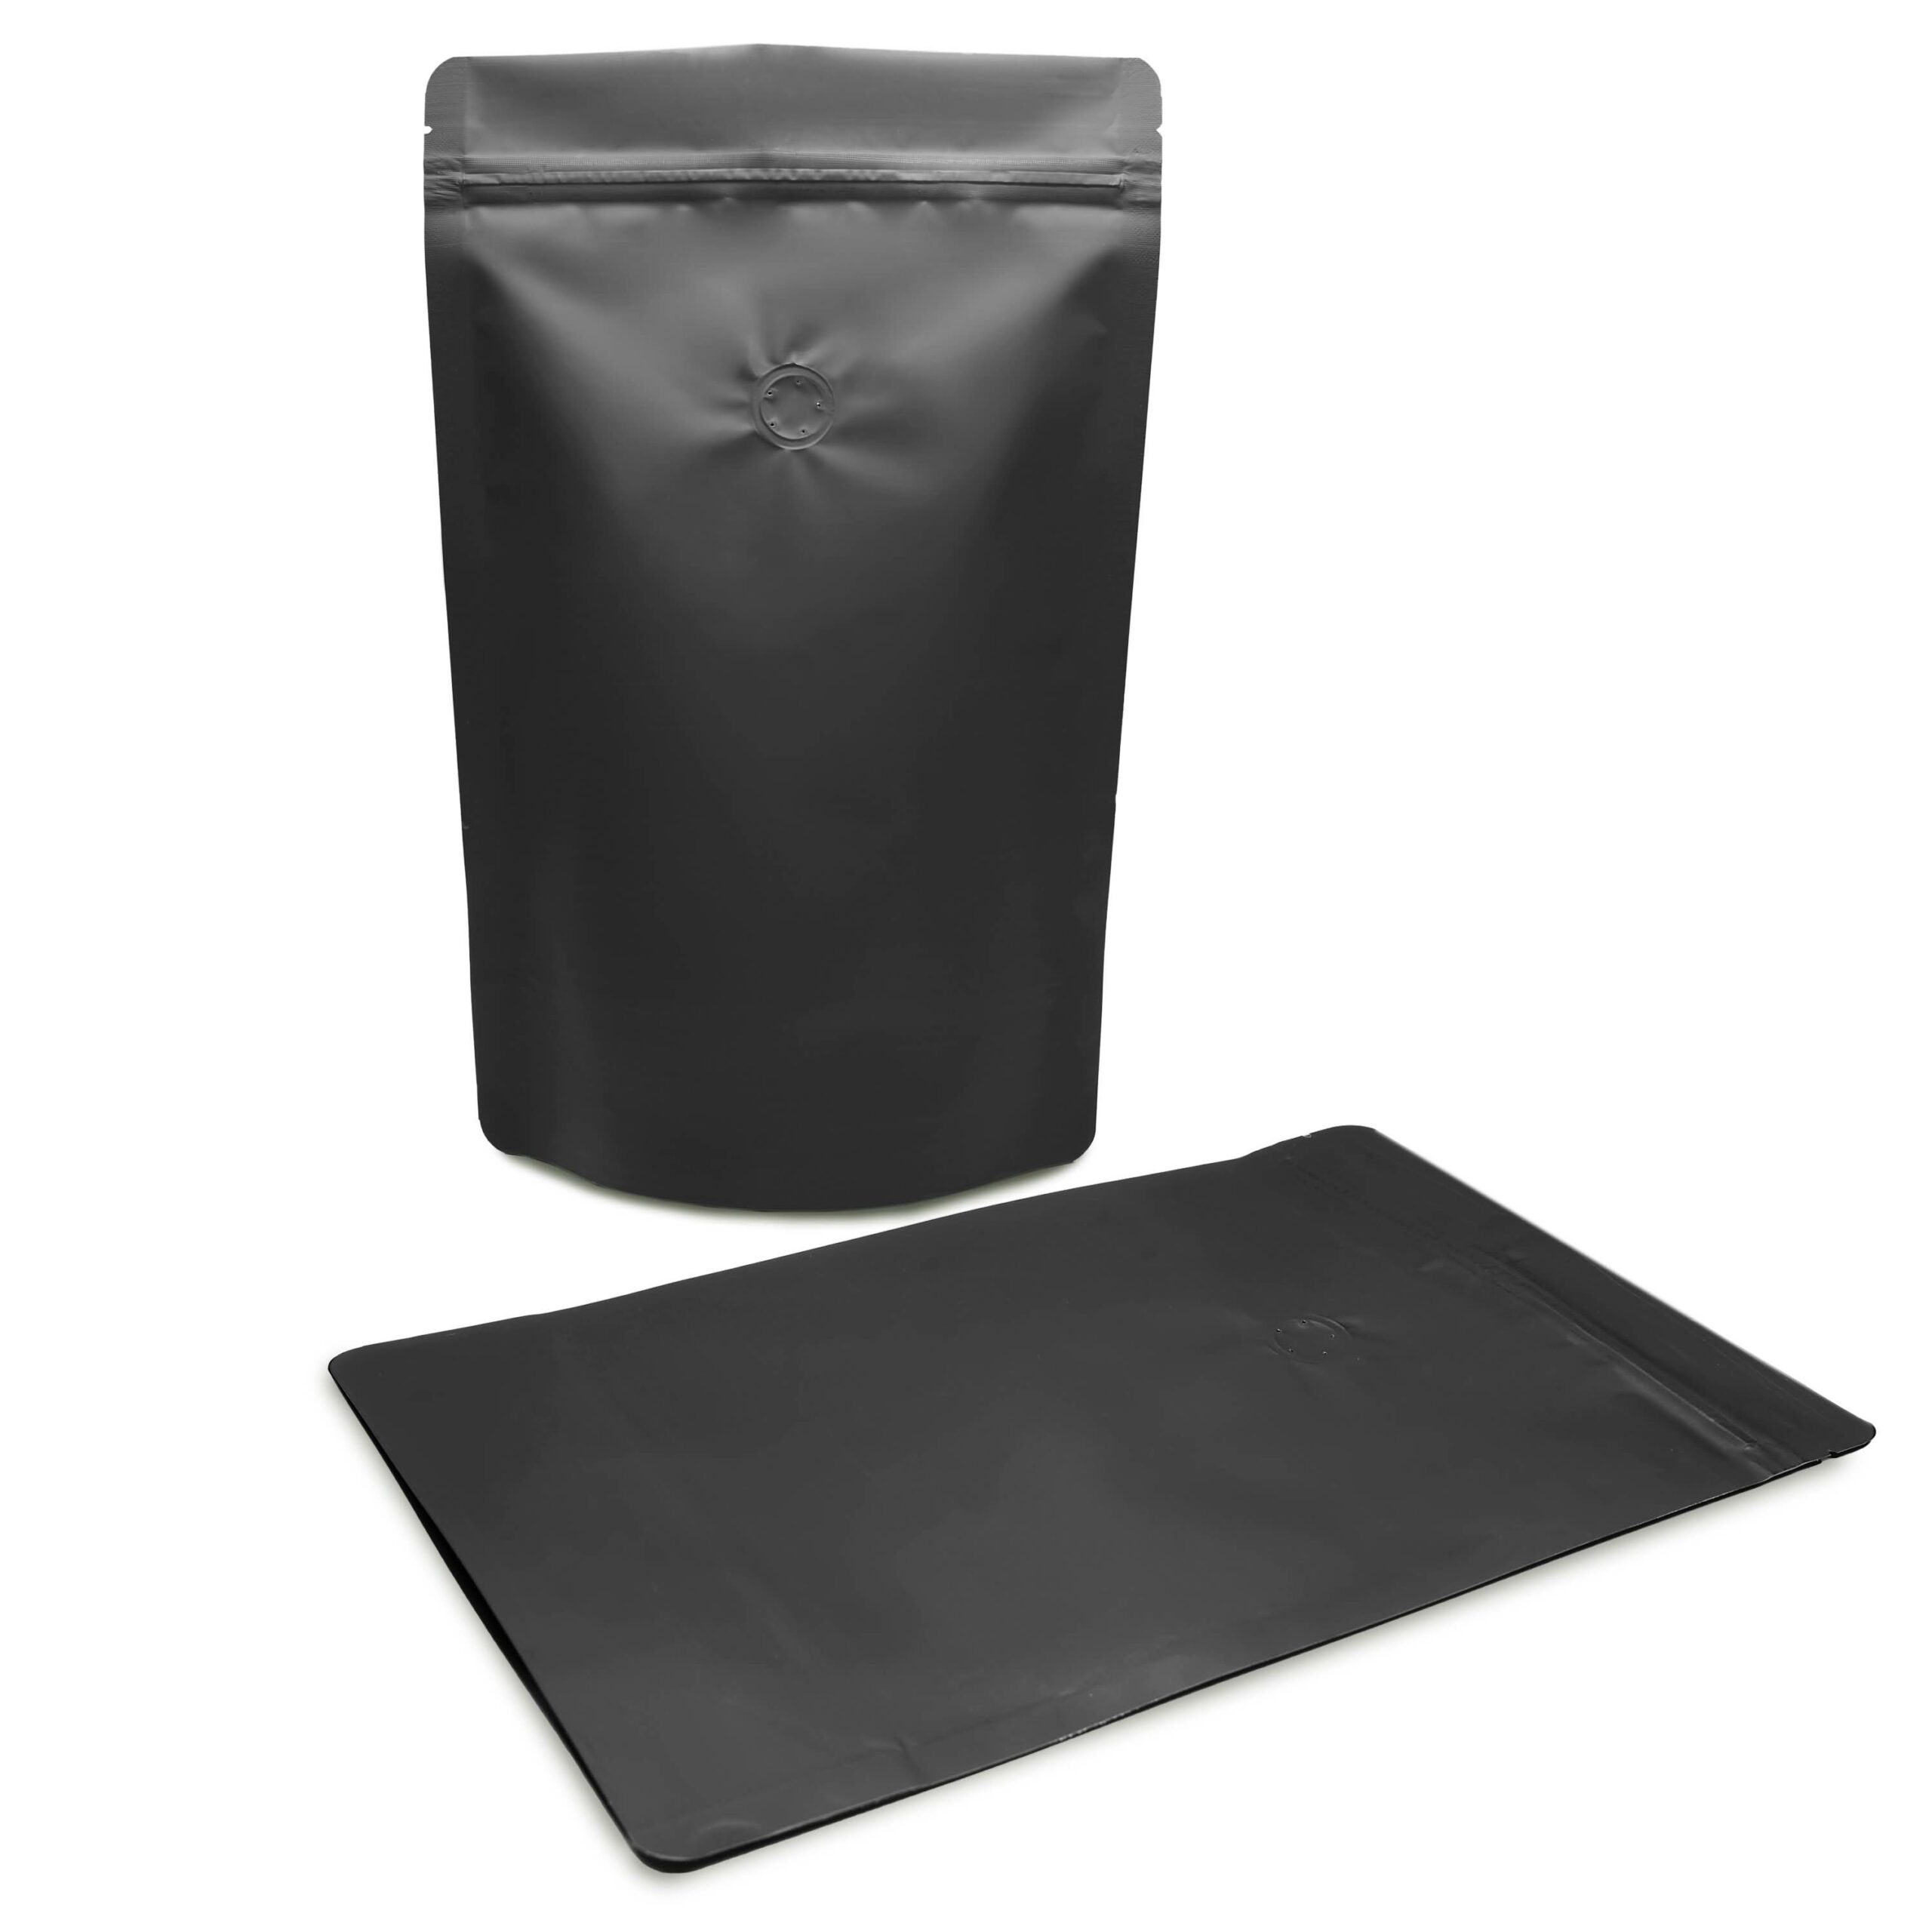 Matte Black Stand Up Pouch with Valve for Coffee